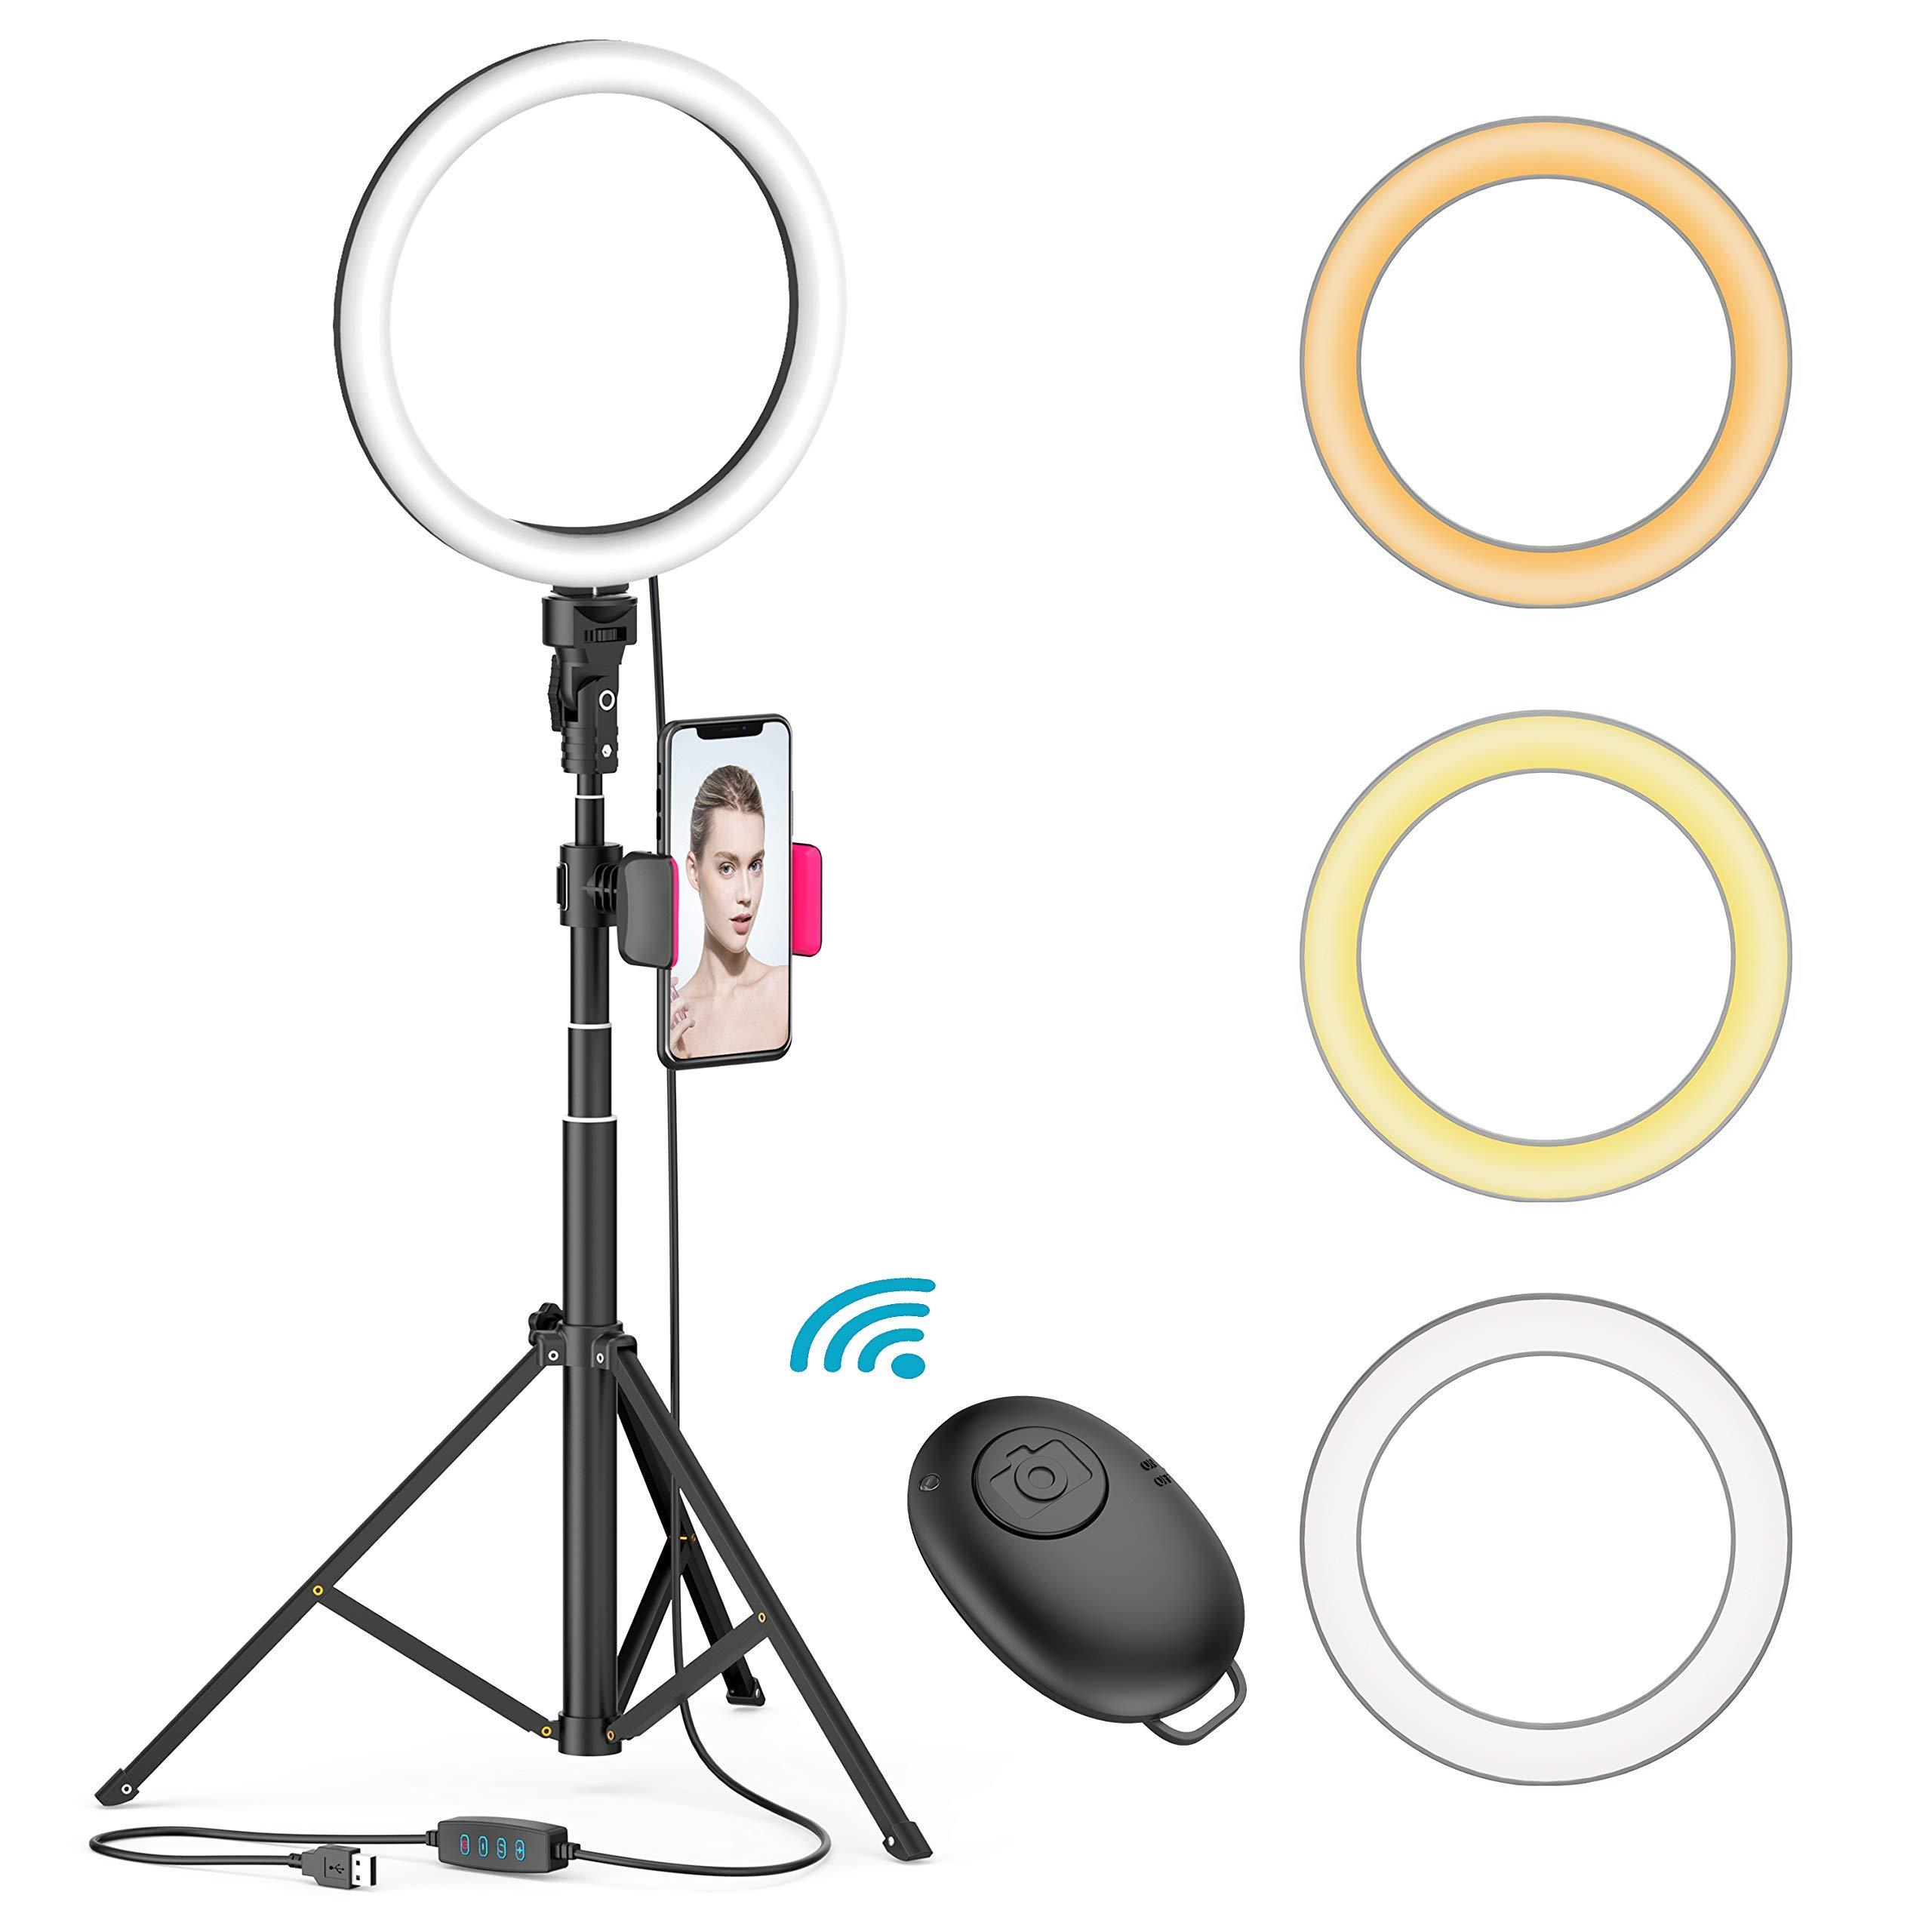 8 LED Selfie Ring Light for Live Stream/Makeup/YouTube Video, Dimmable Beauty Ringlight with Tripod Stand and Phone Holder Compatible with iPhone/Android